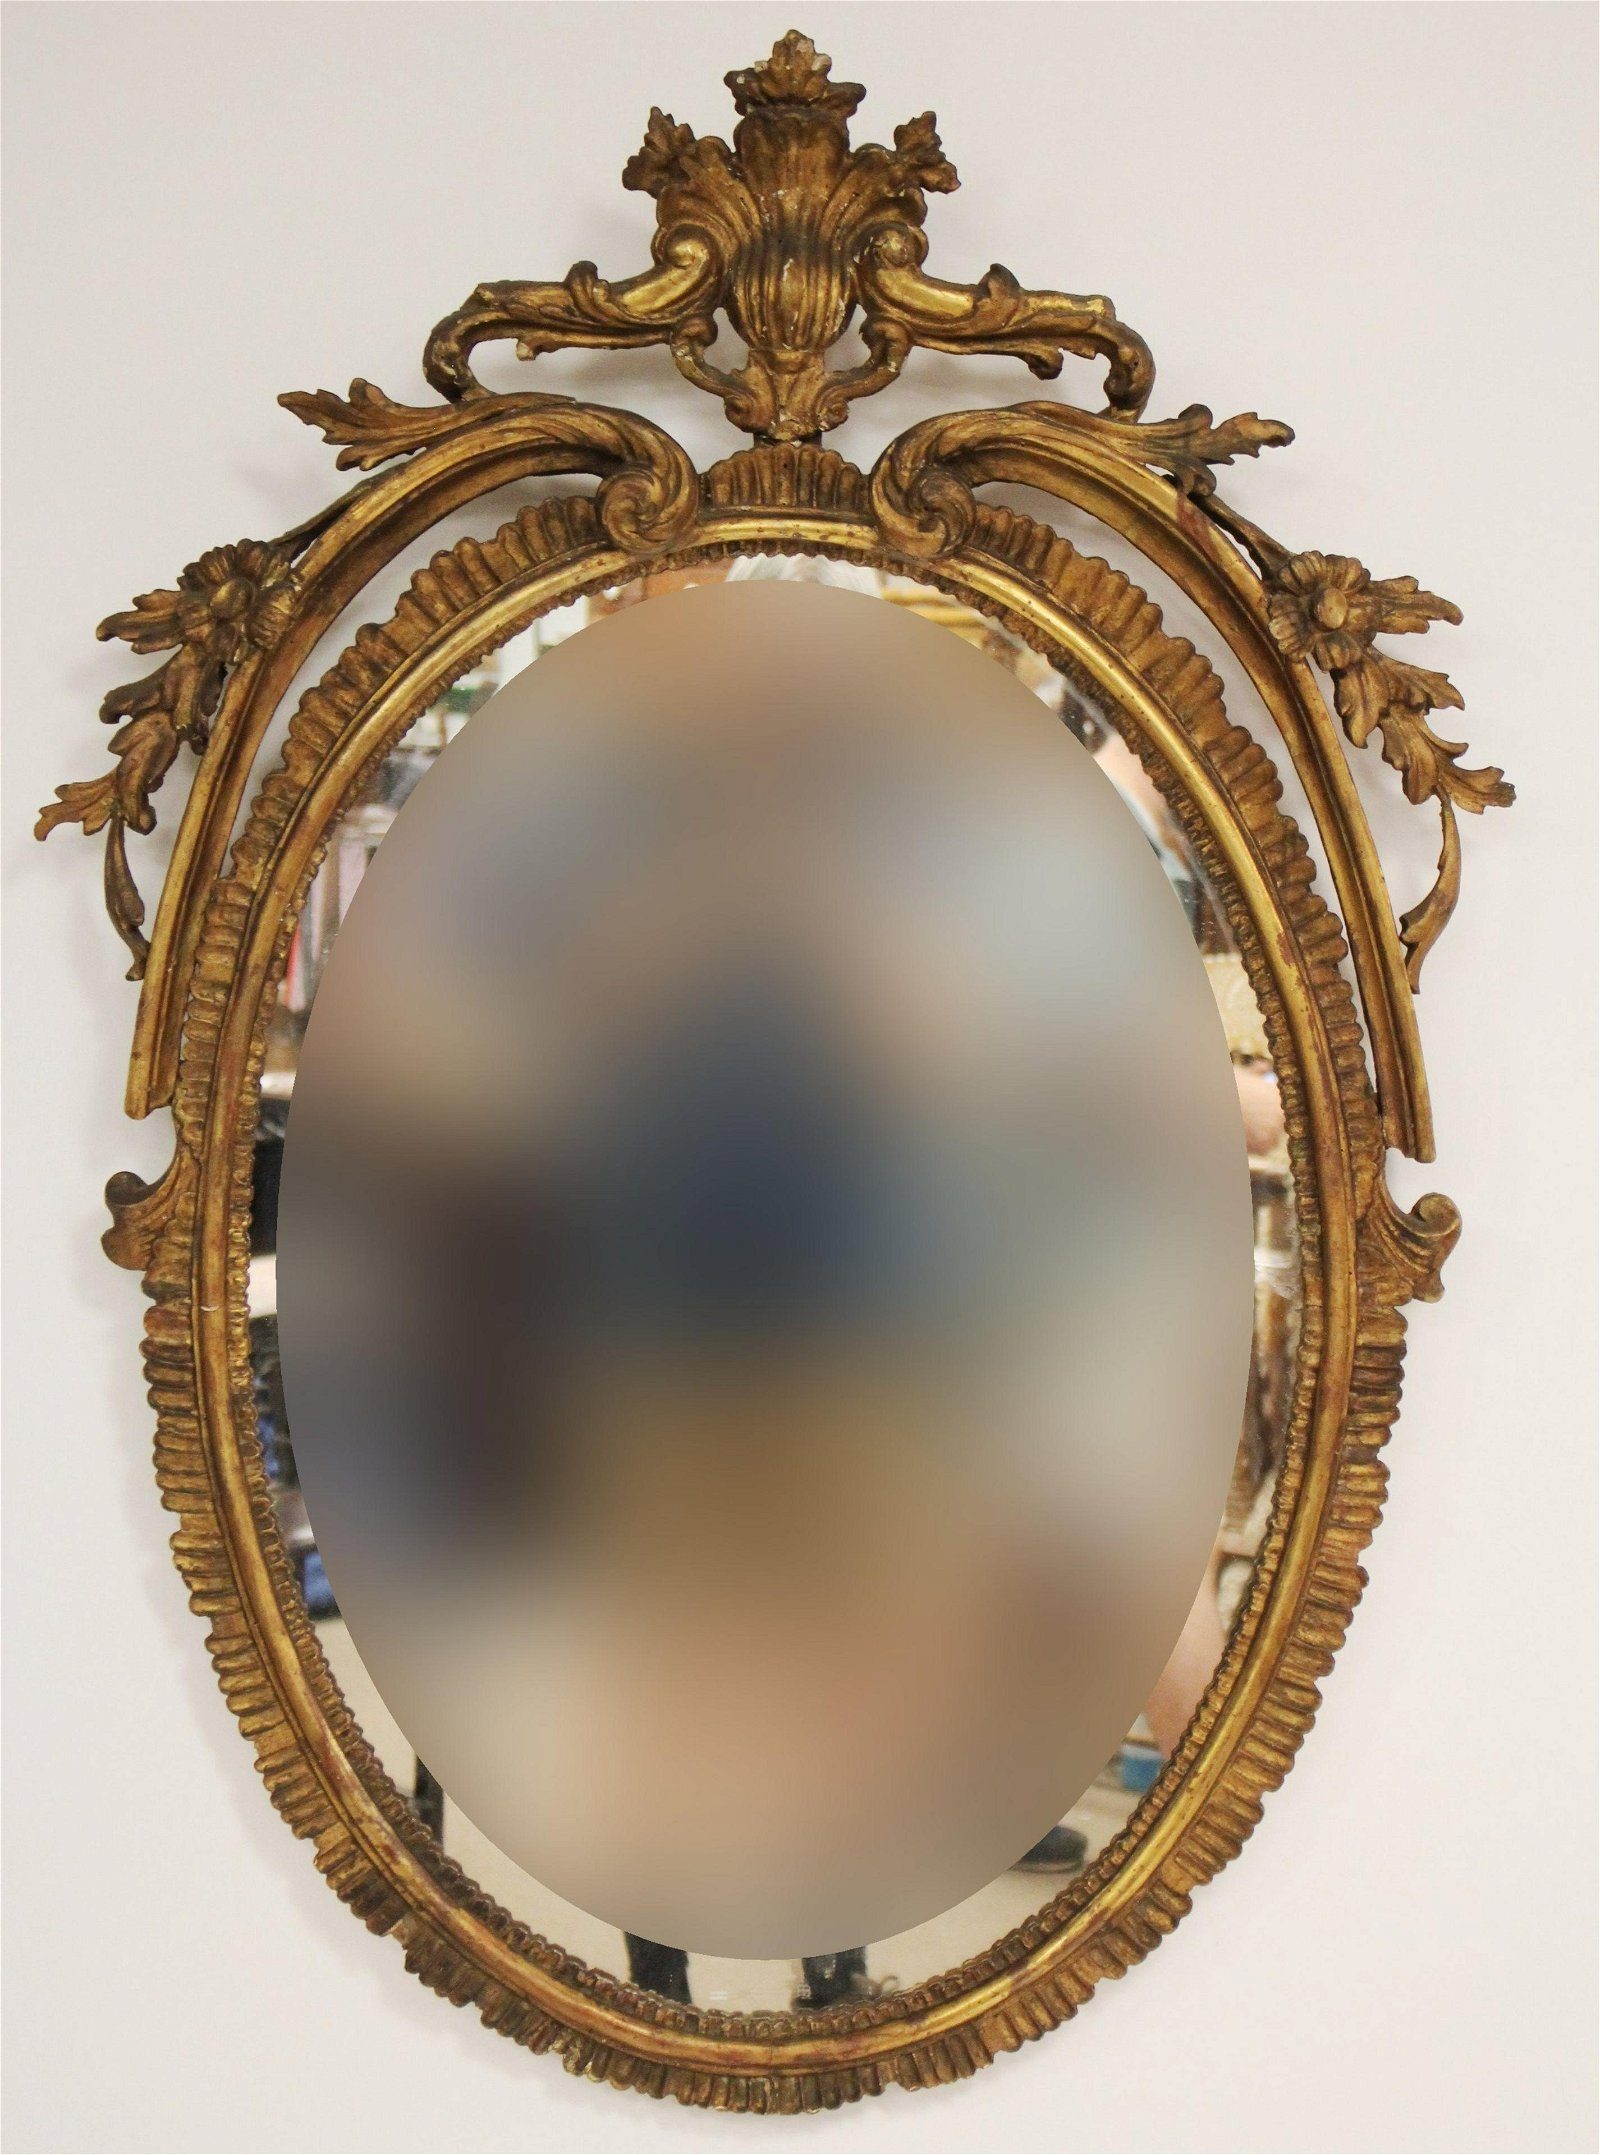 Oval Giltwood Mirror W/ Antique Crest